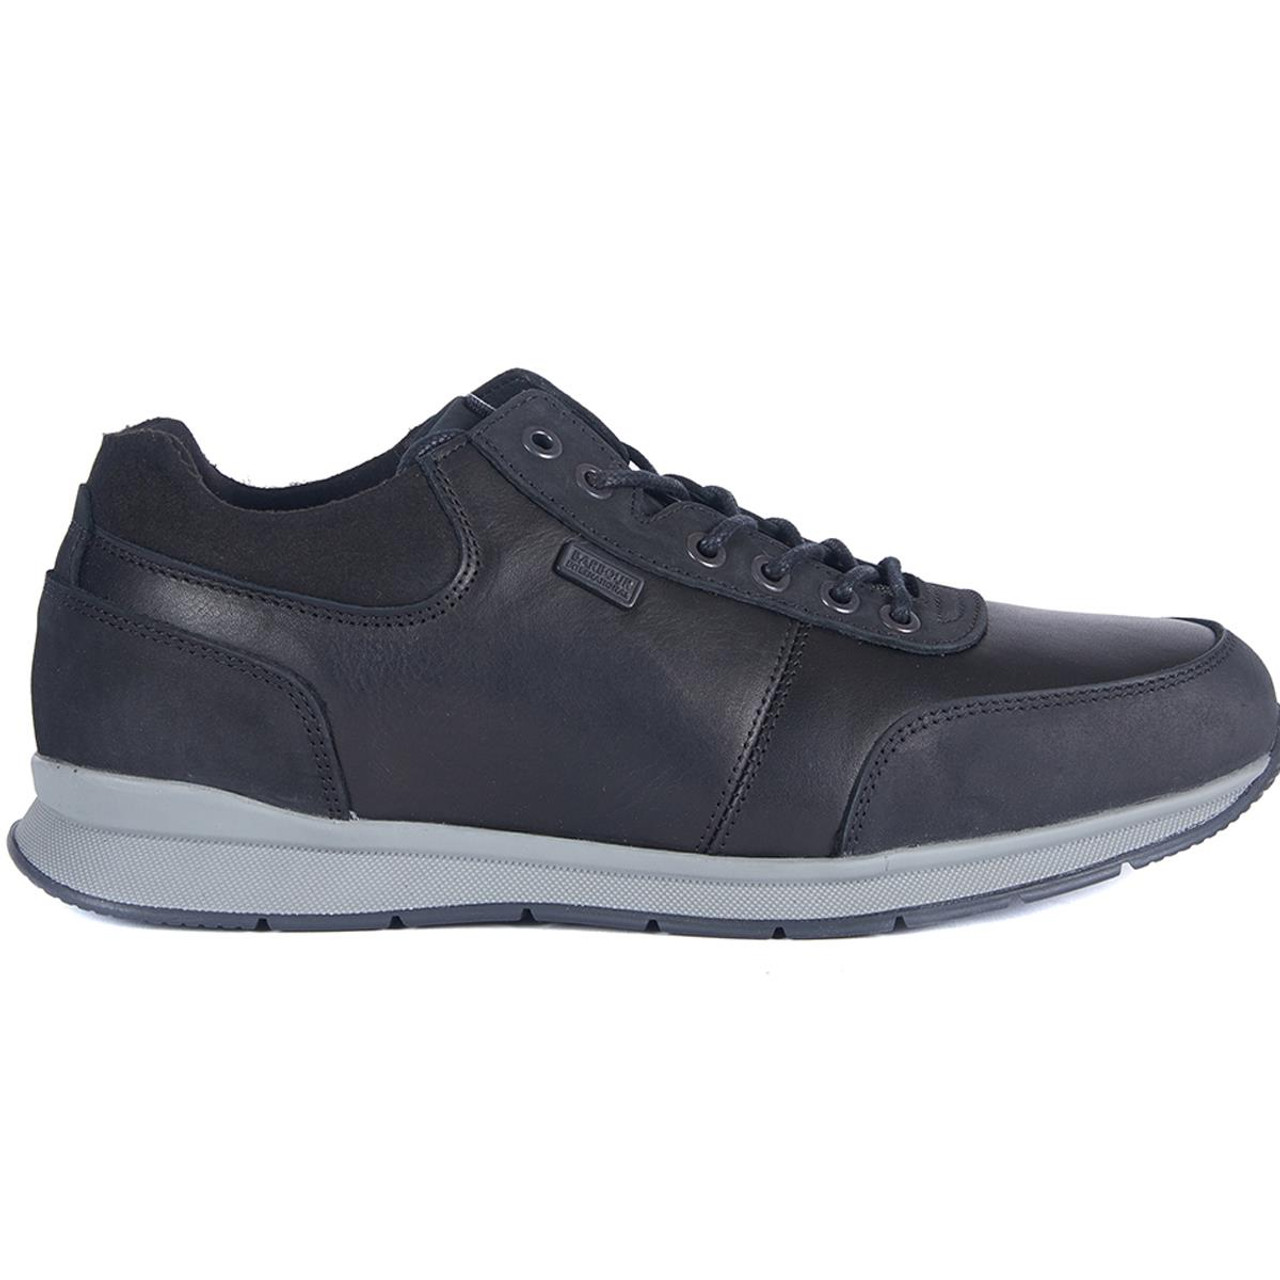 Black Barbour International Mens Chain Shoes Side